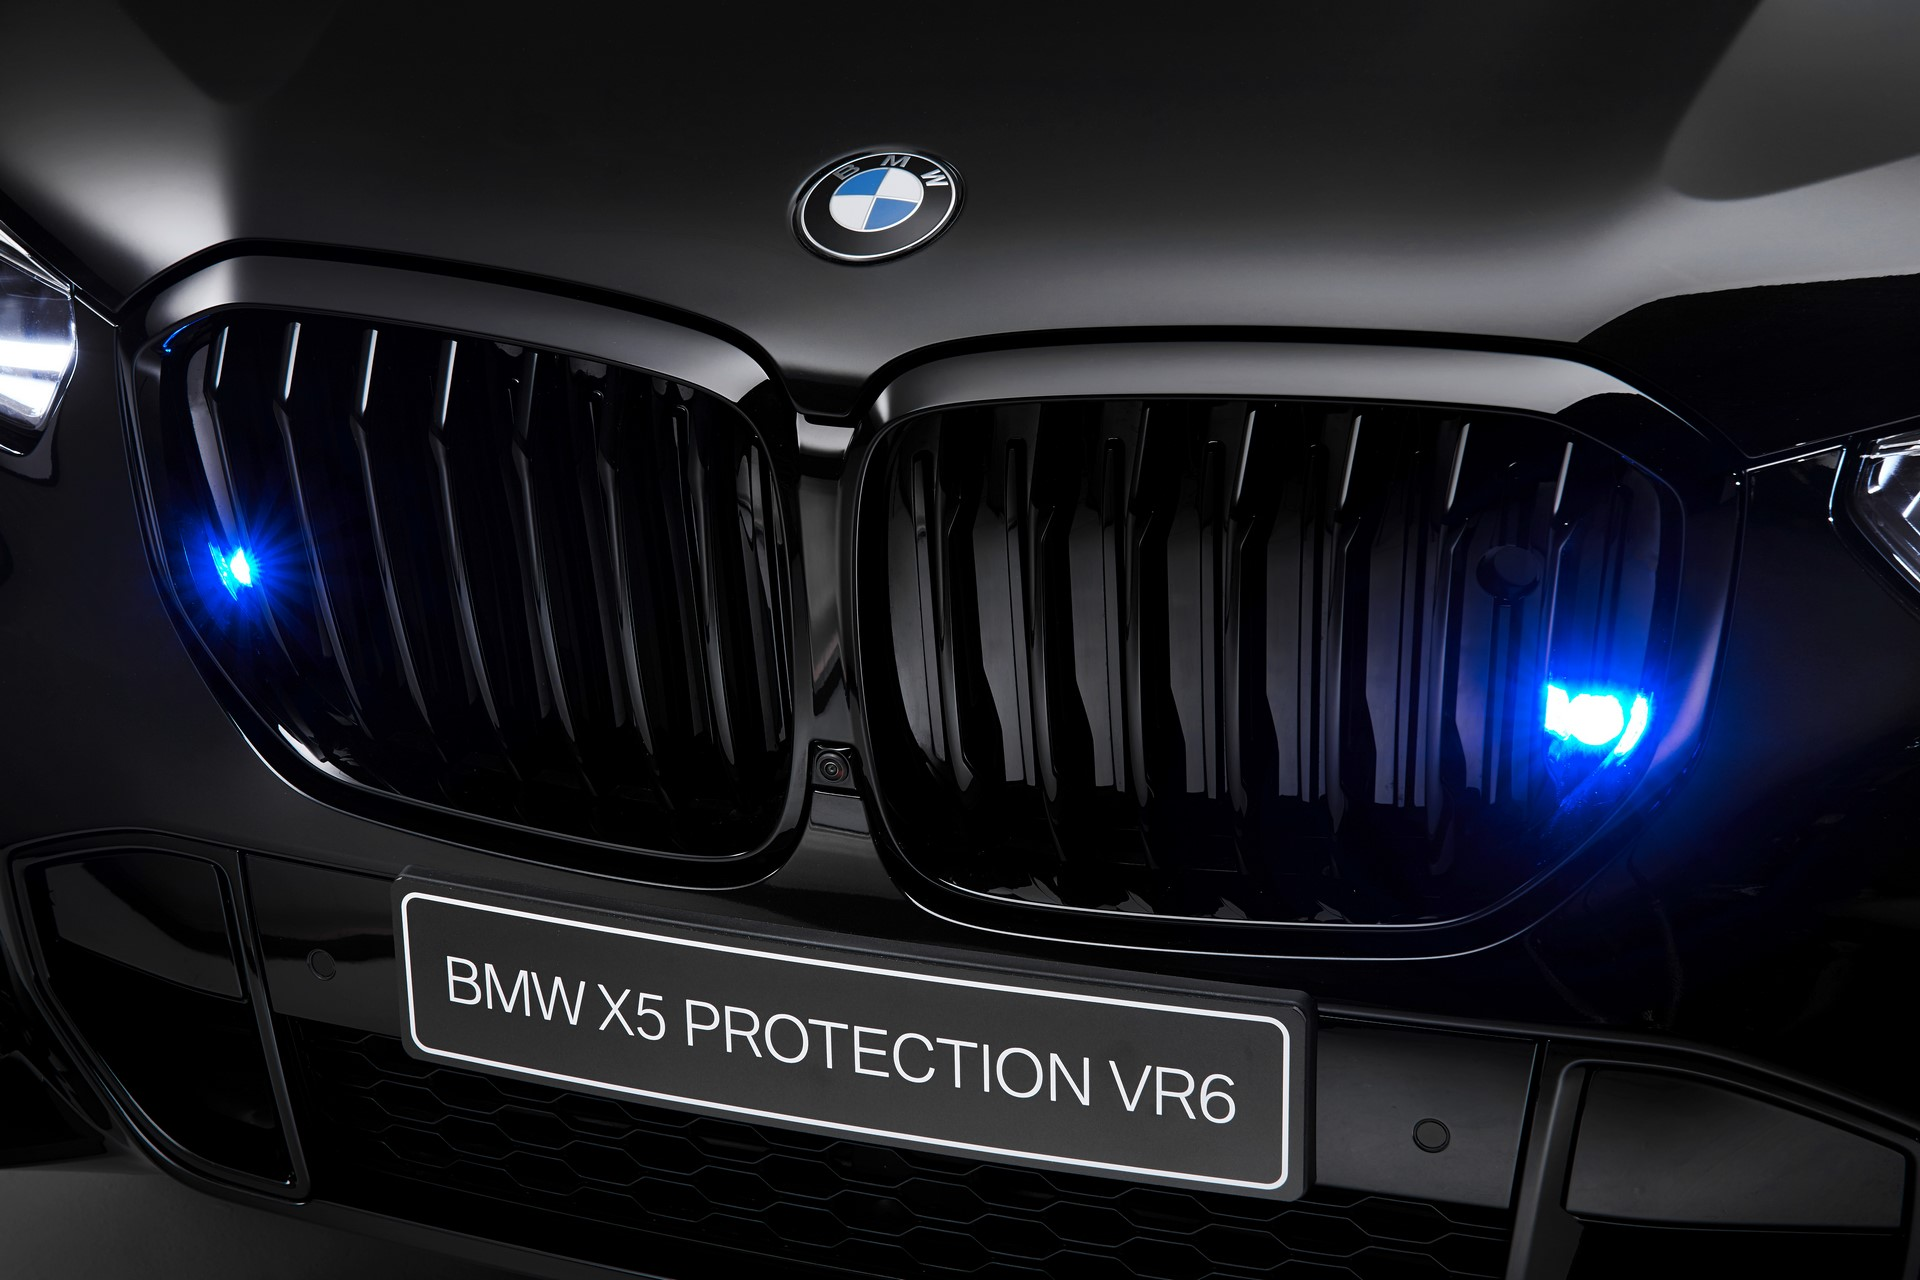 BMW-X5-Protection-VR6-16